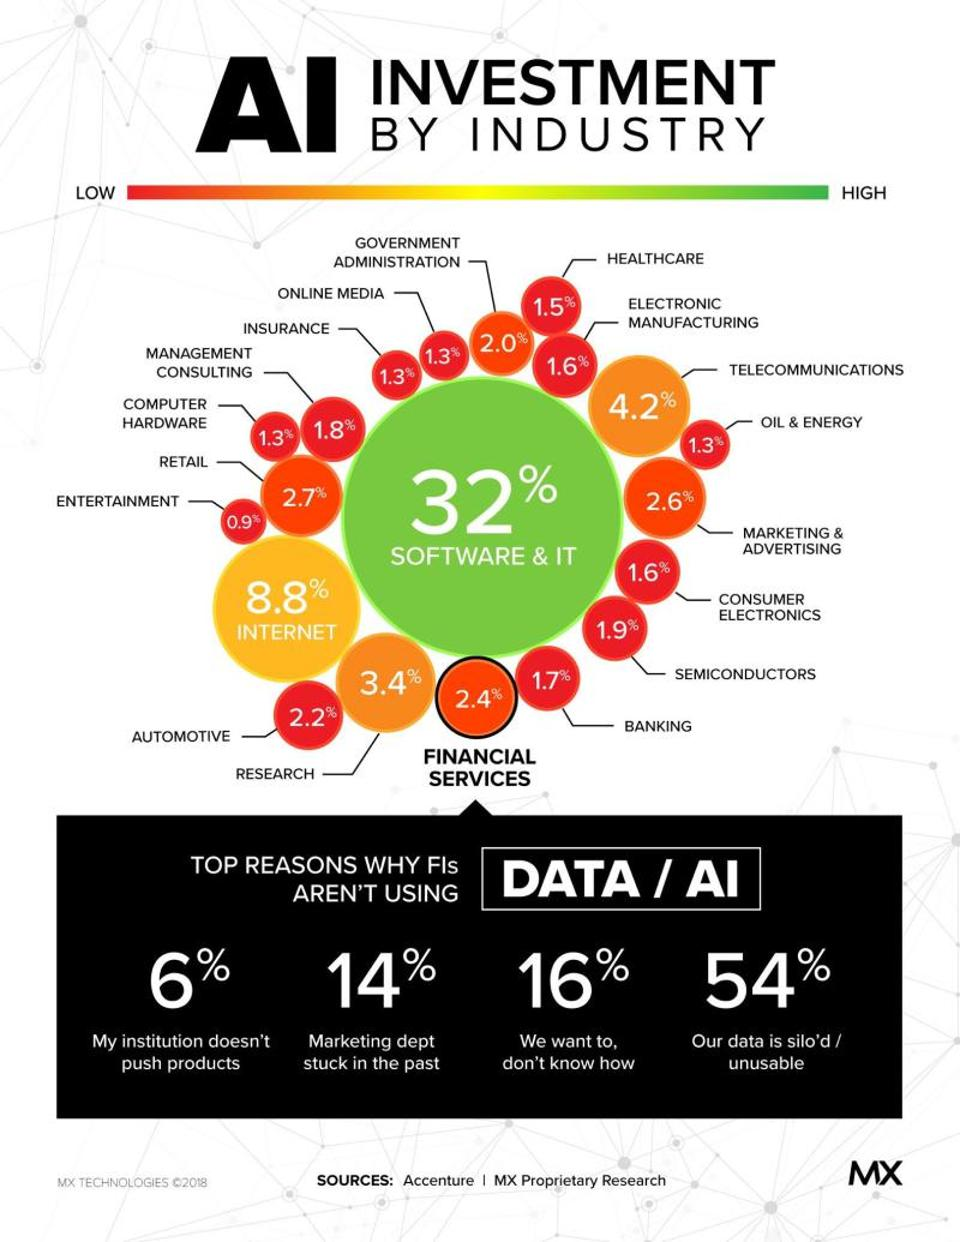 54% of financial institution employees surveyed by Accenture said that they can't leverage AI because their data is either siloed or unusable